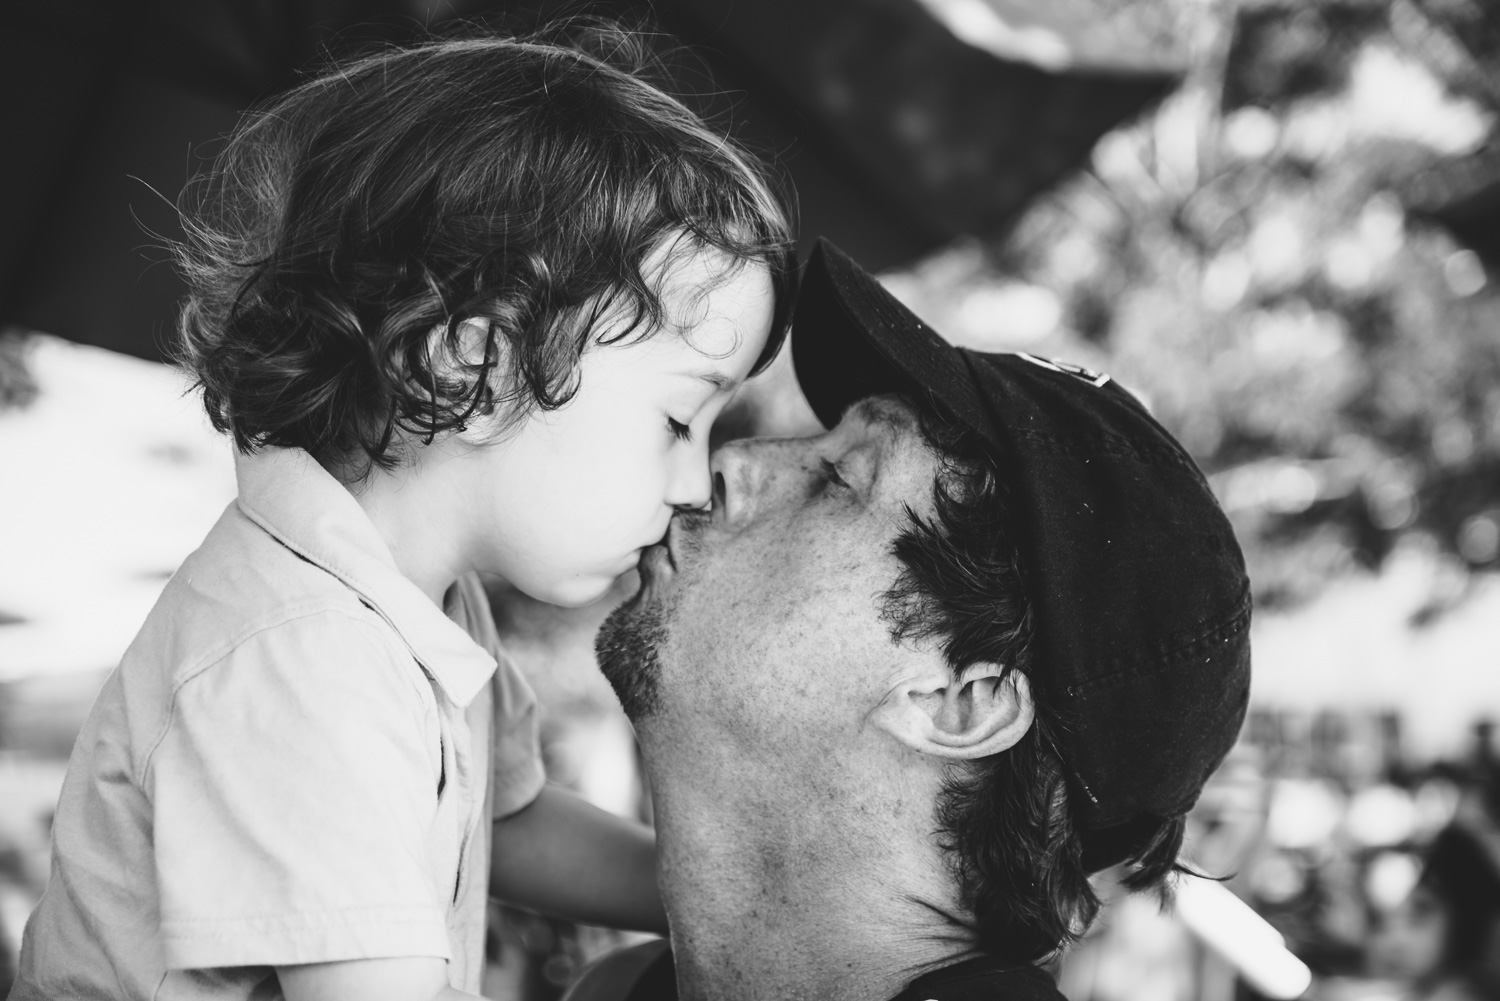 Francesca Russell Photography | Astoria, Queens Family Photographer | Kissing sleepy Dylan